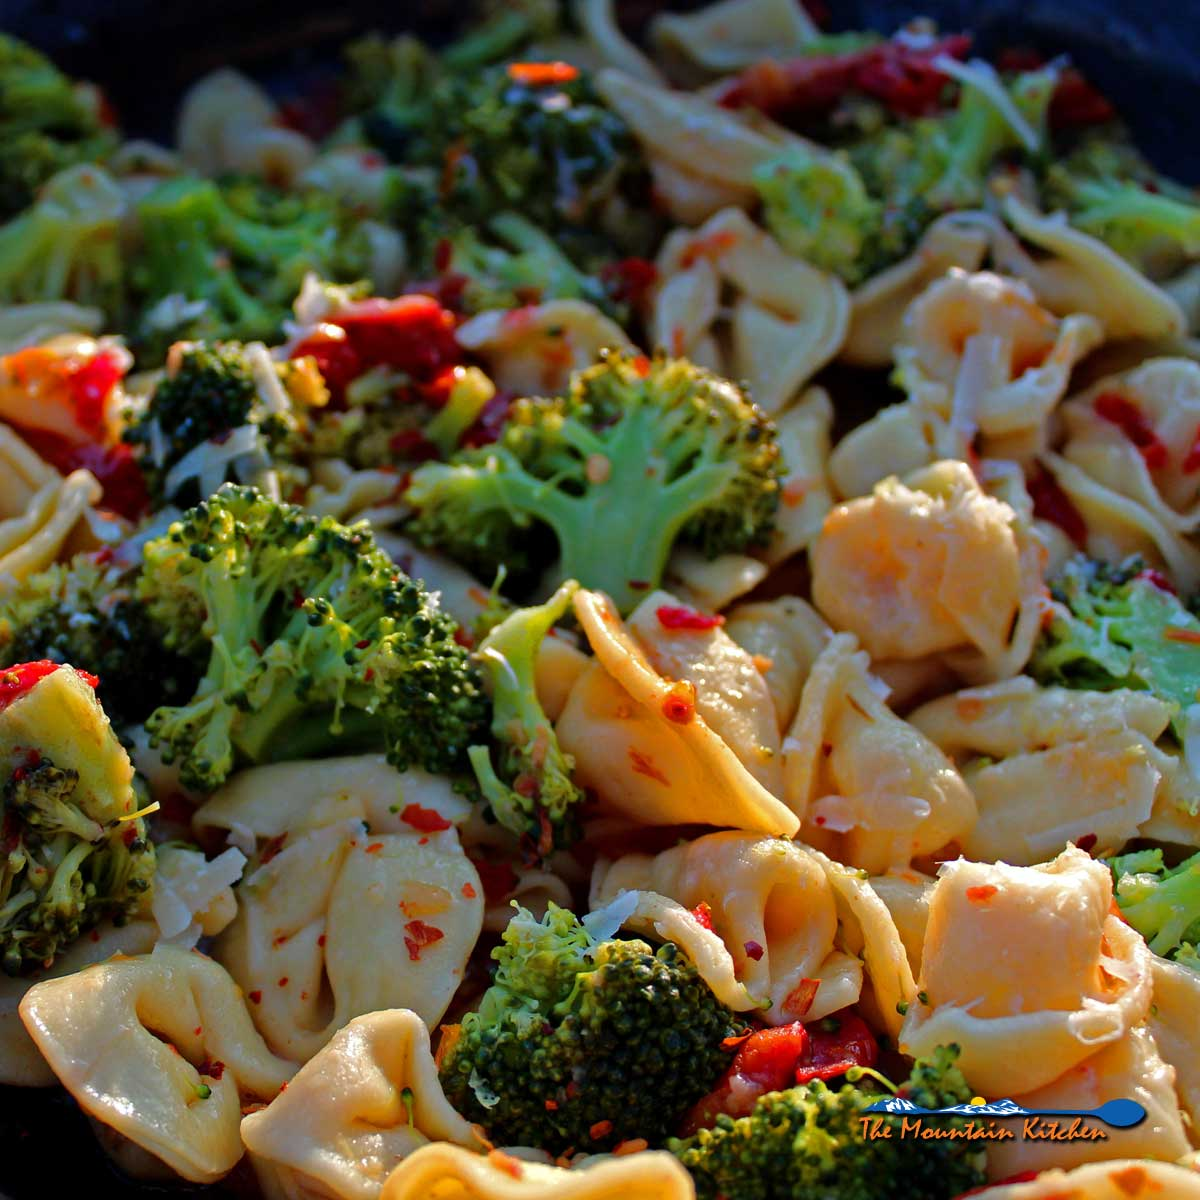 Tortellini with broccoli and sun-dried tomatoes a simple vegetarian pasta dish that comes together quickly for a hearty and healthy meal in no time.